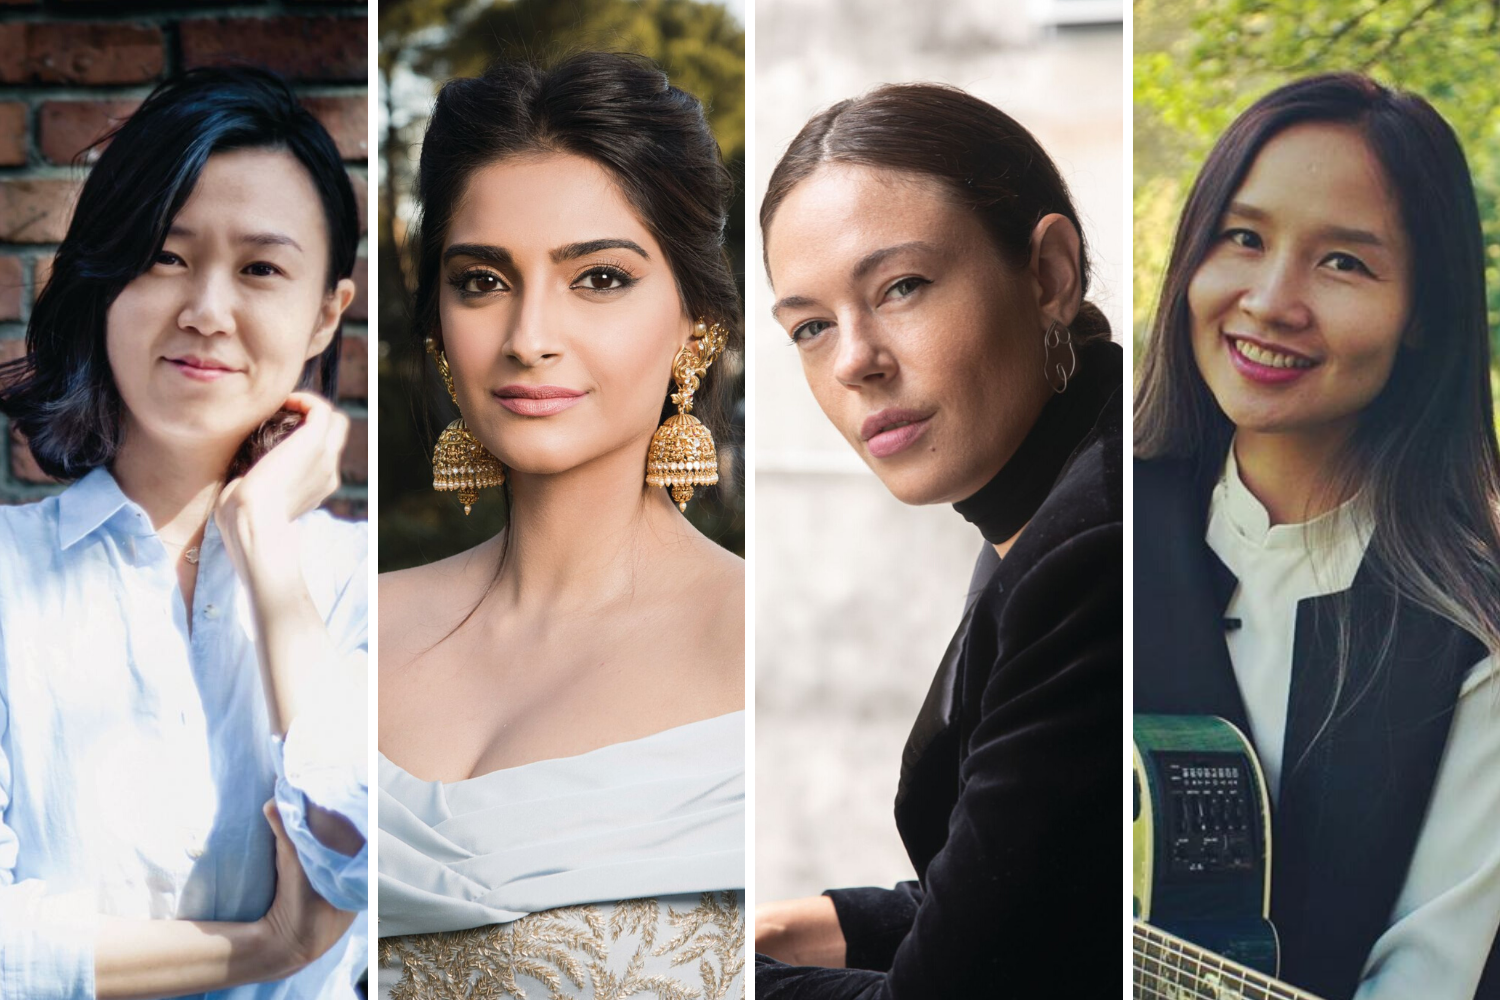 Meet The 16 Women Who Are Fighting For Equality in Asia